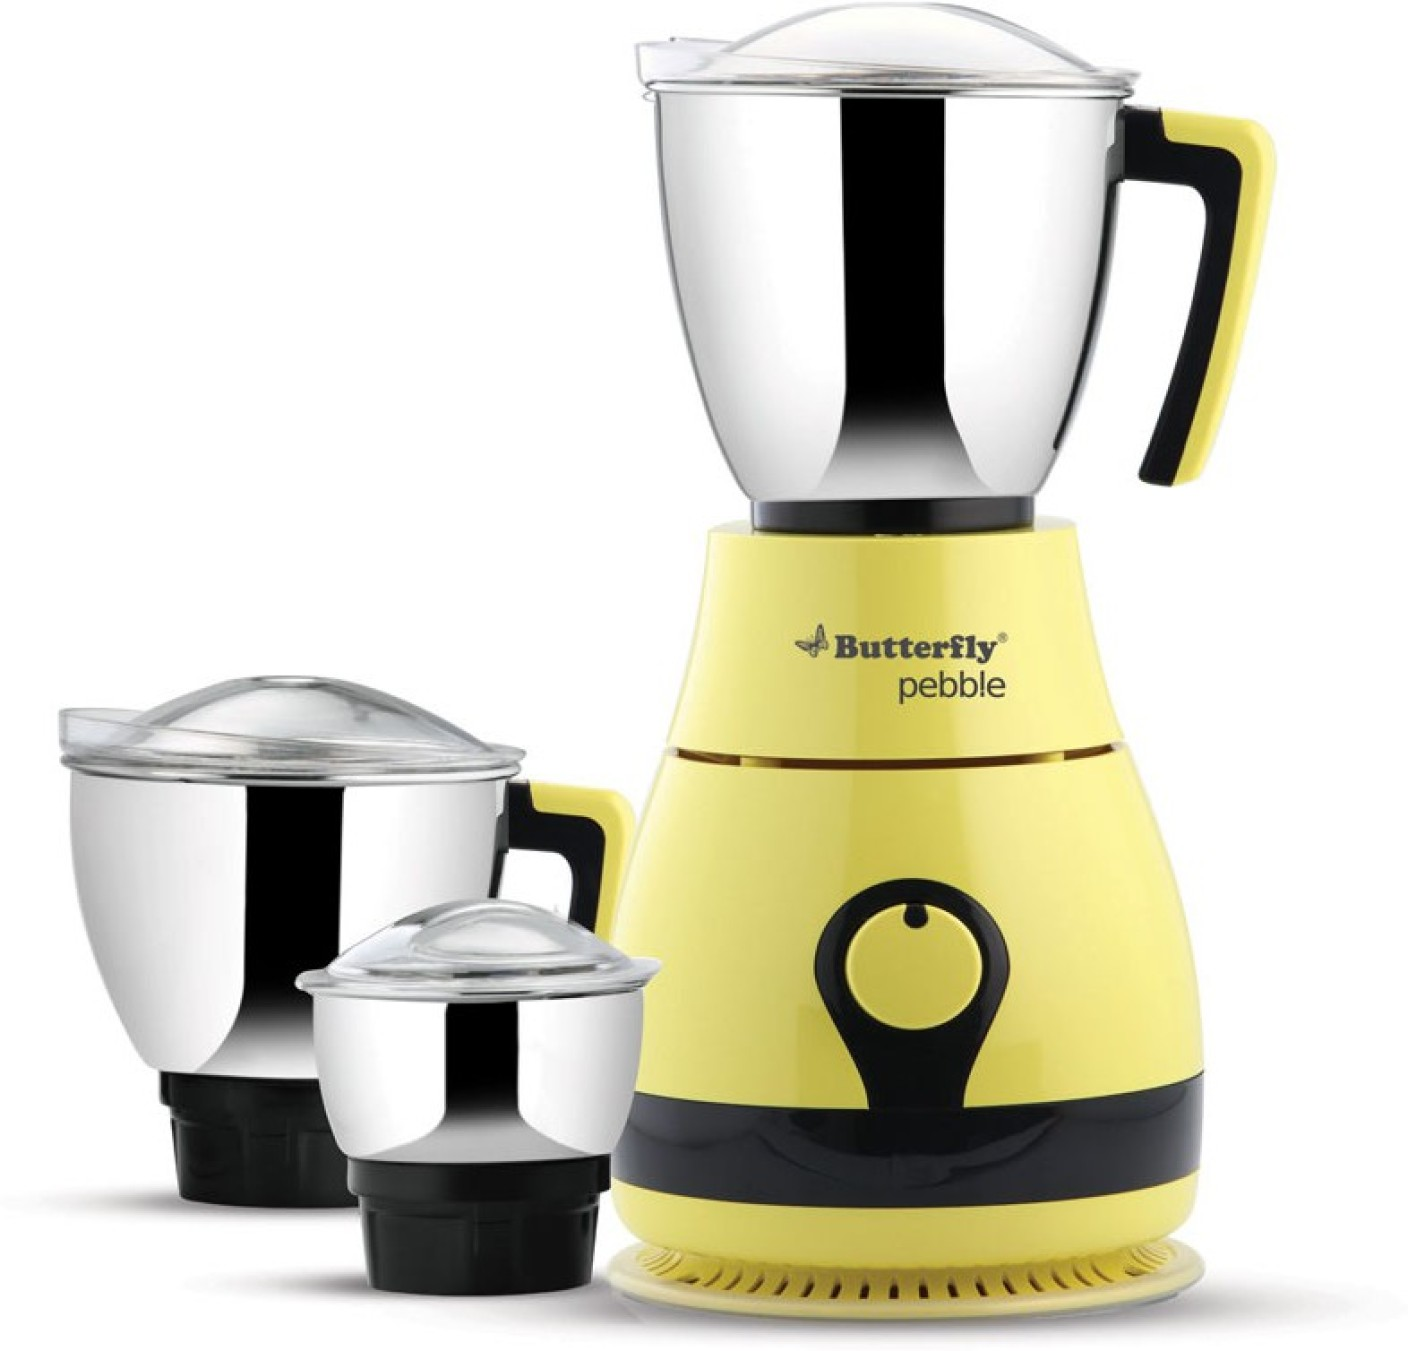 Butterfly Kitchen Appliances Butterfly Pebble 3 Jar 600w 600 W Mixer Grinder Price In India